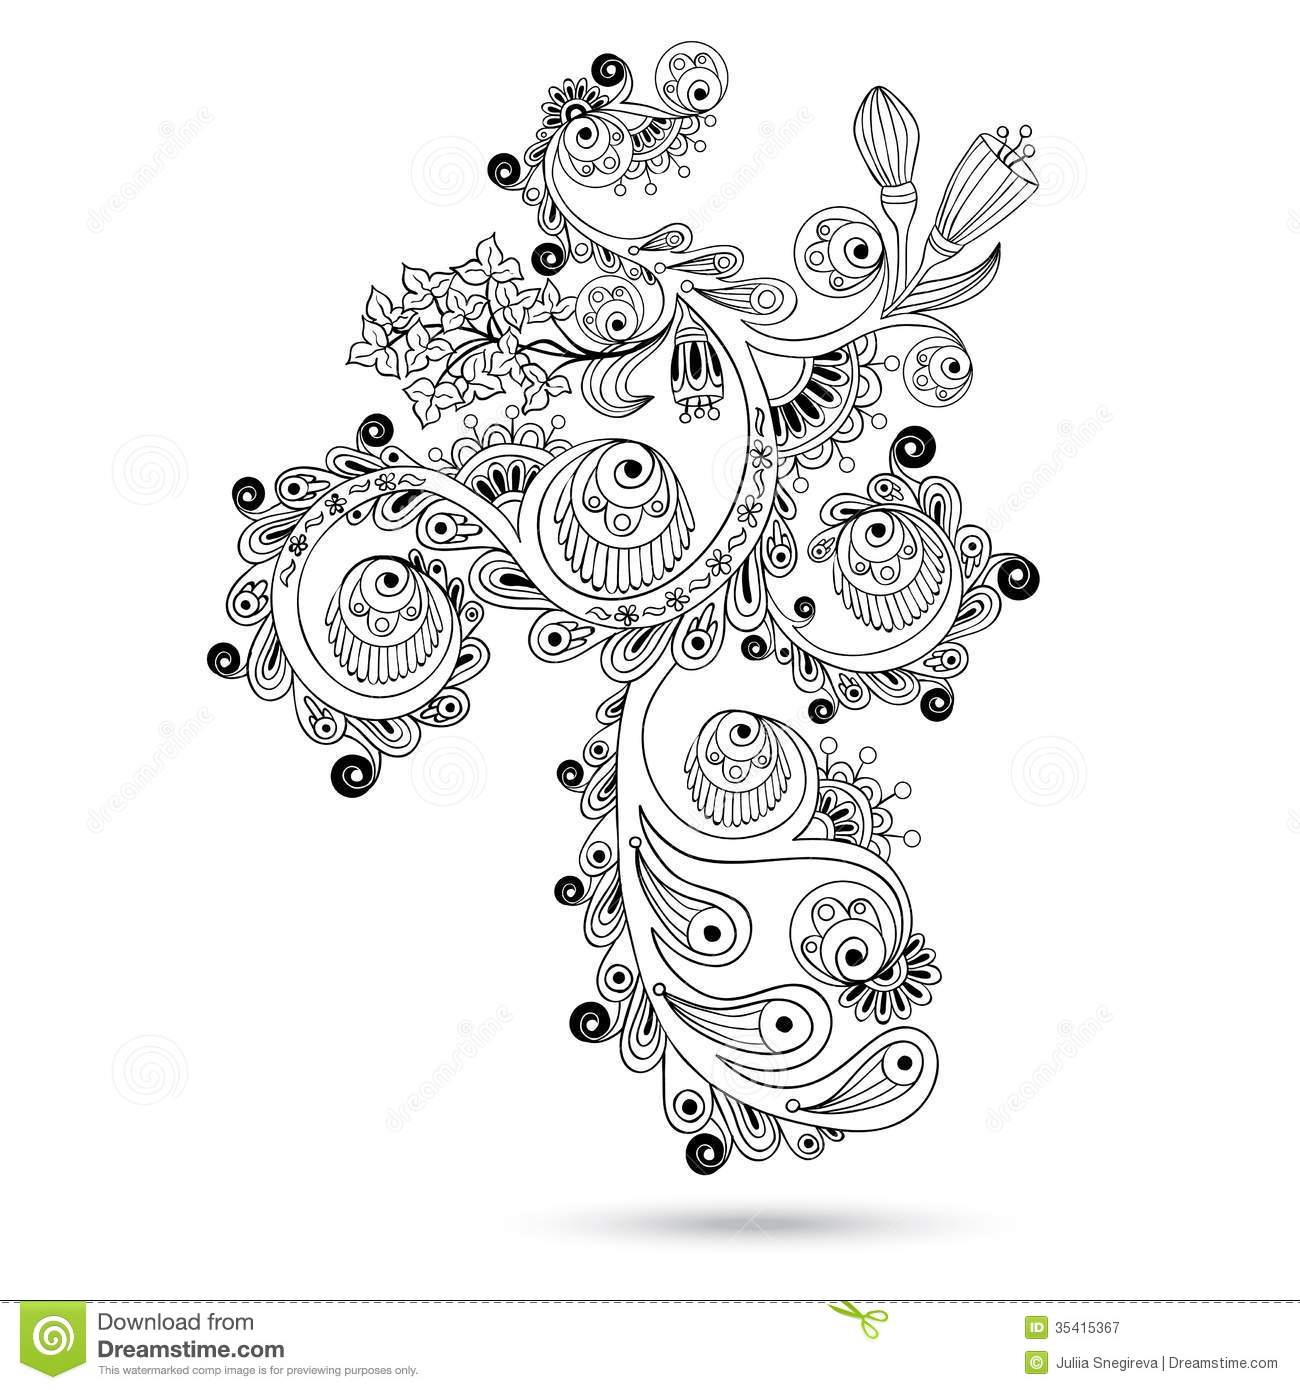 Engraved Scroll Stock Photos, Royalty-Free Images & Vectors ...